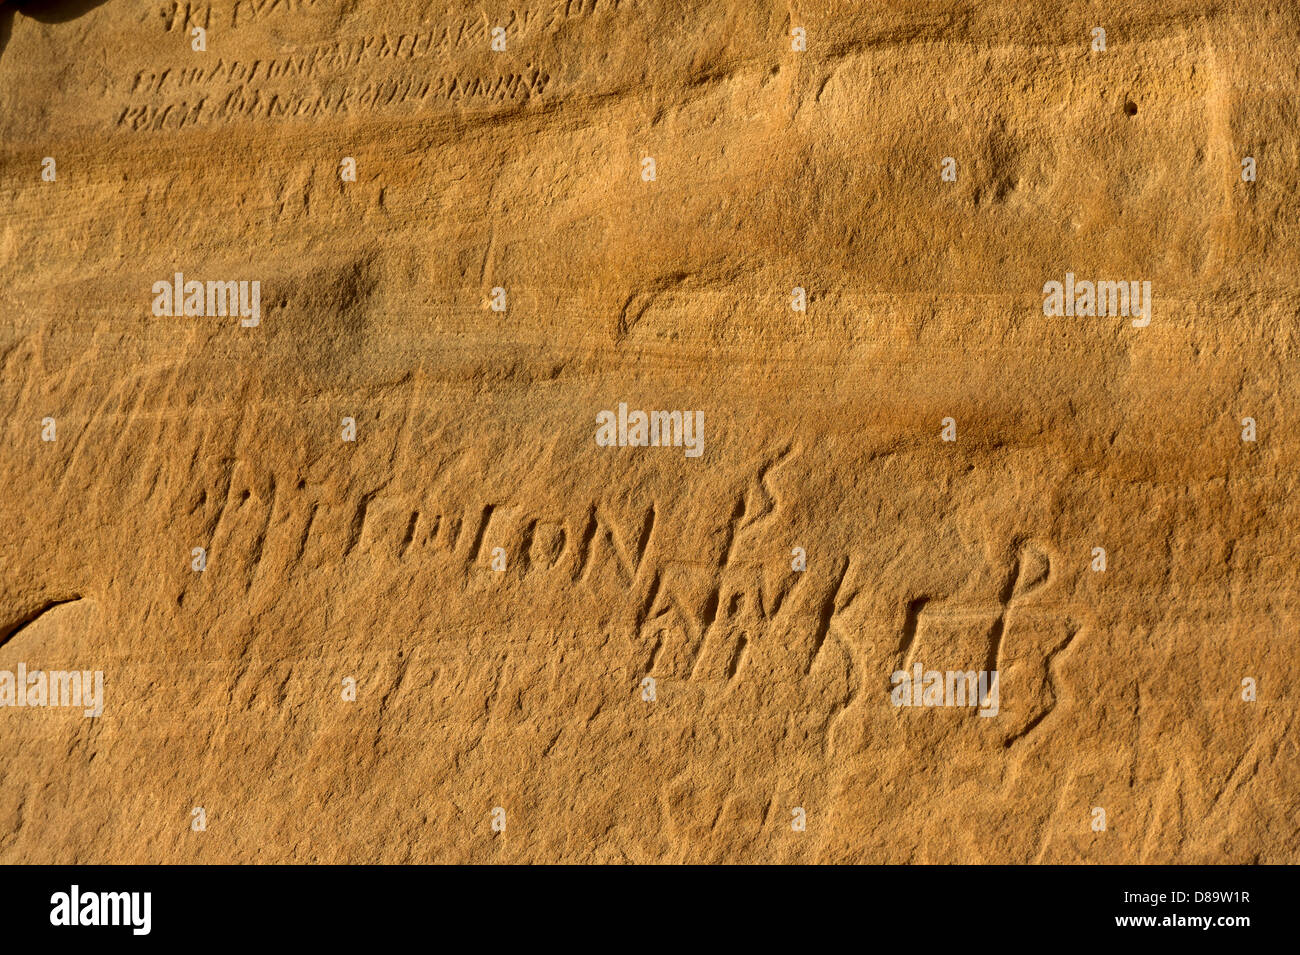 EGYPT sinai desert rock mountain sand drawing signs pictures granite rock art bedouin Saint Catherine road  rare - Stock Image